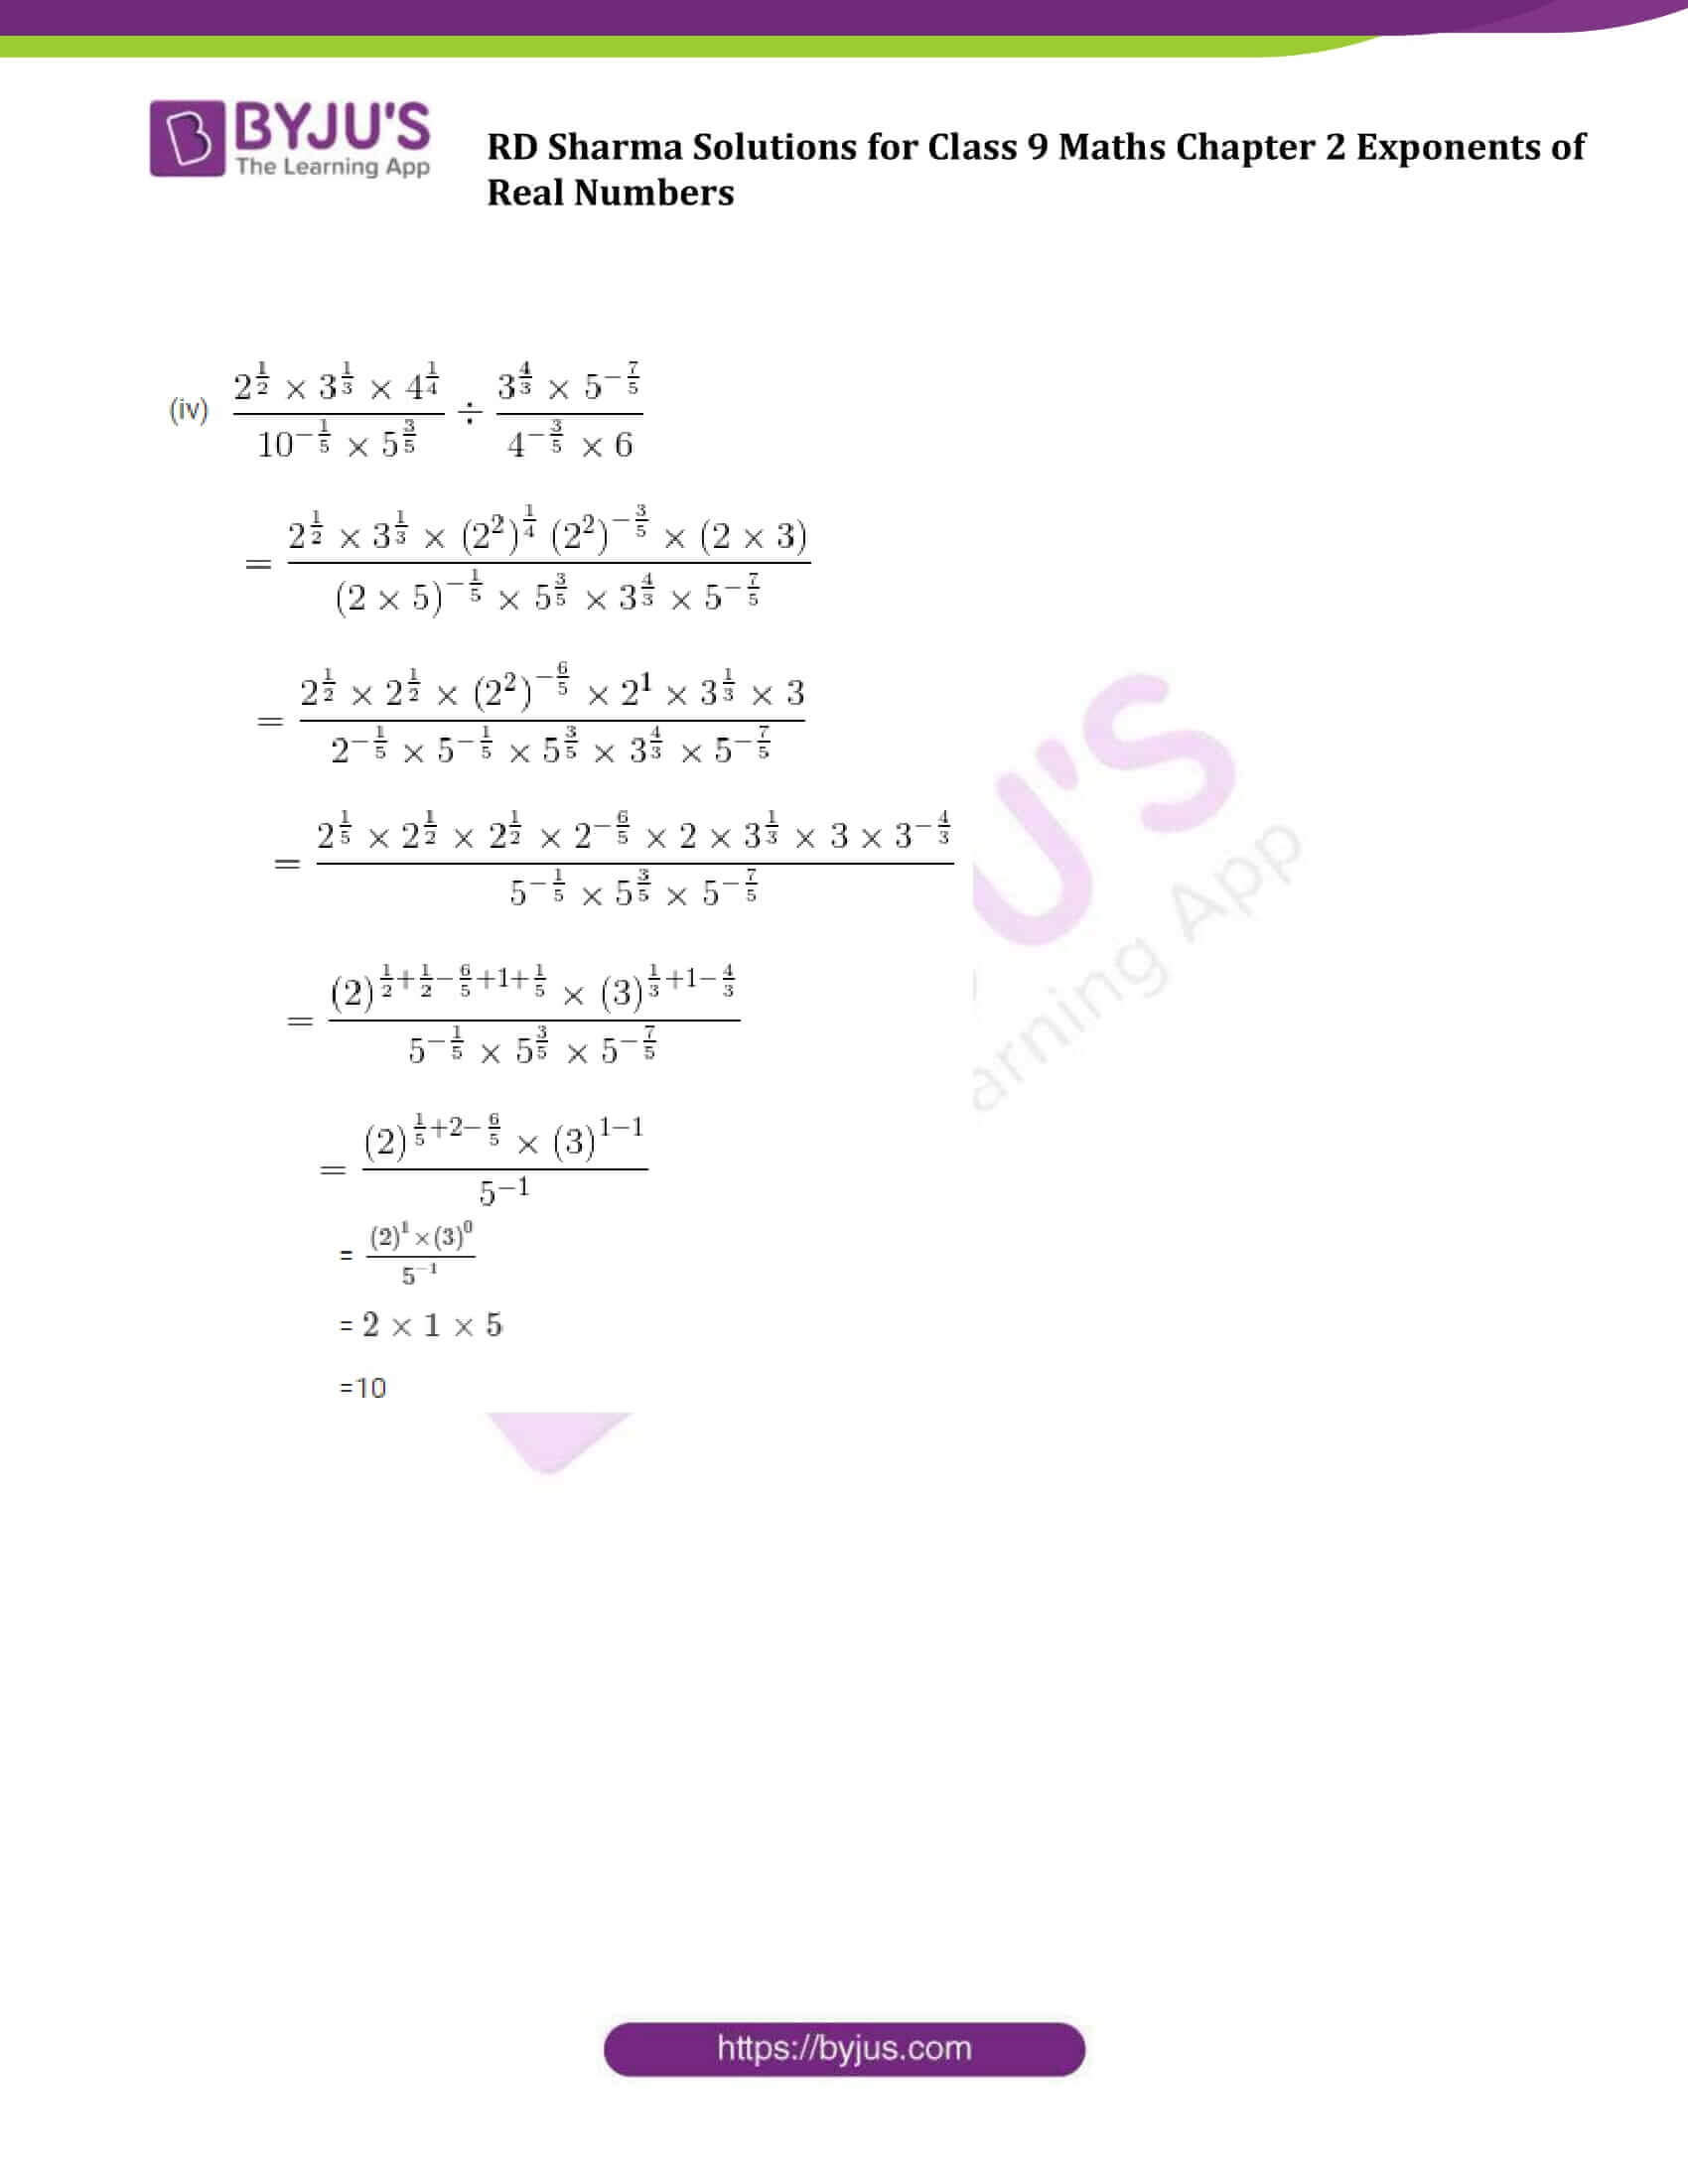 RD Sharma Solution class 9 Maths Chapter 2 Exponents of Real Numbers 17